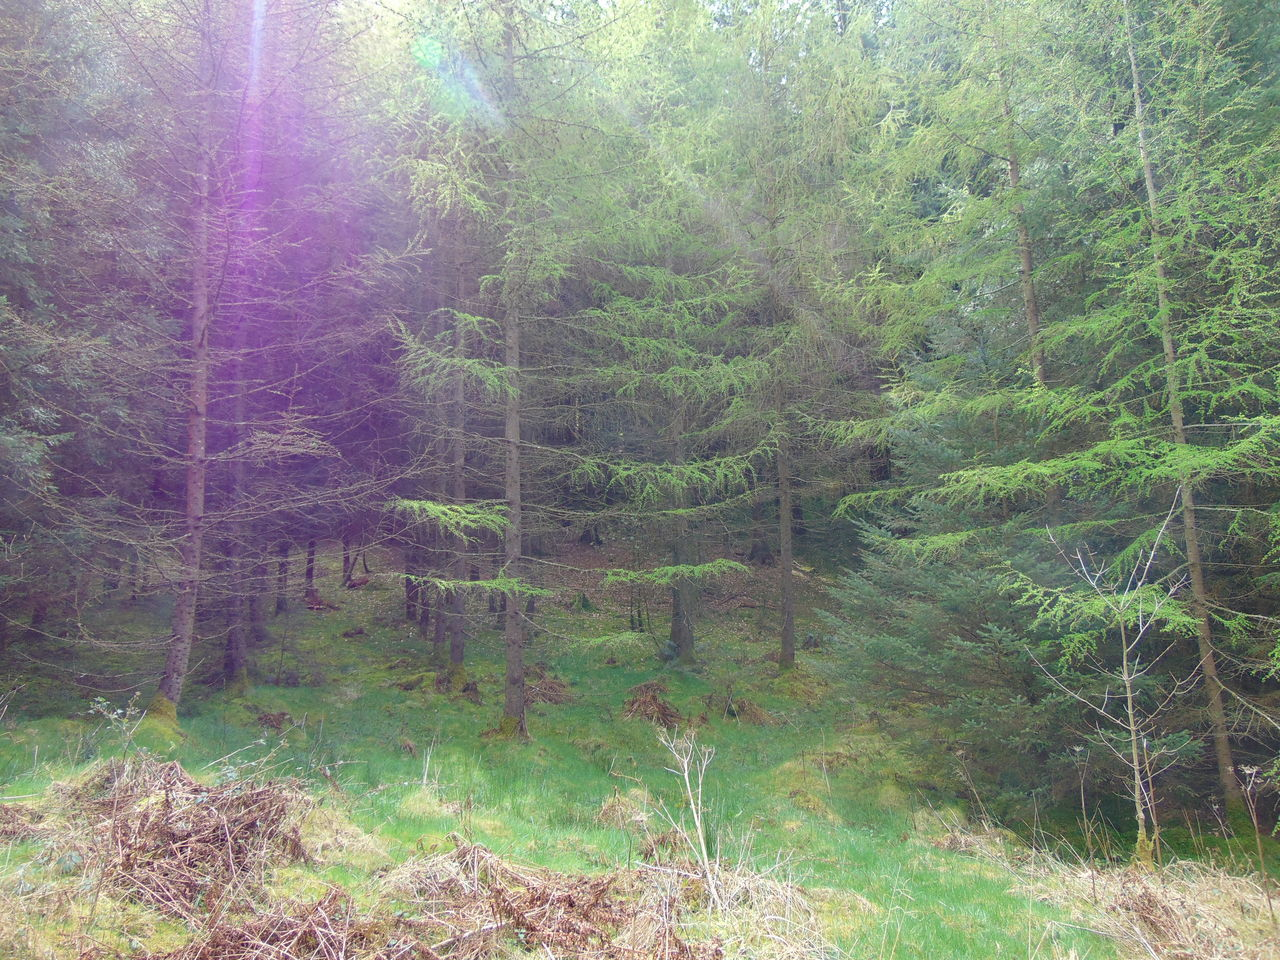 forest, nature, tree, no people, outdoors, beauty in nature, day, tranquil scene, landscape, tranquility, growth, scenics, grass